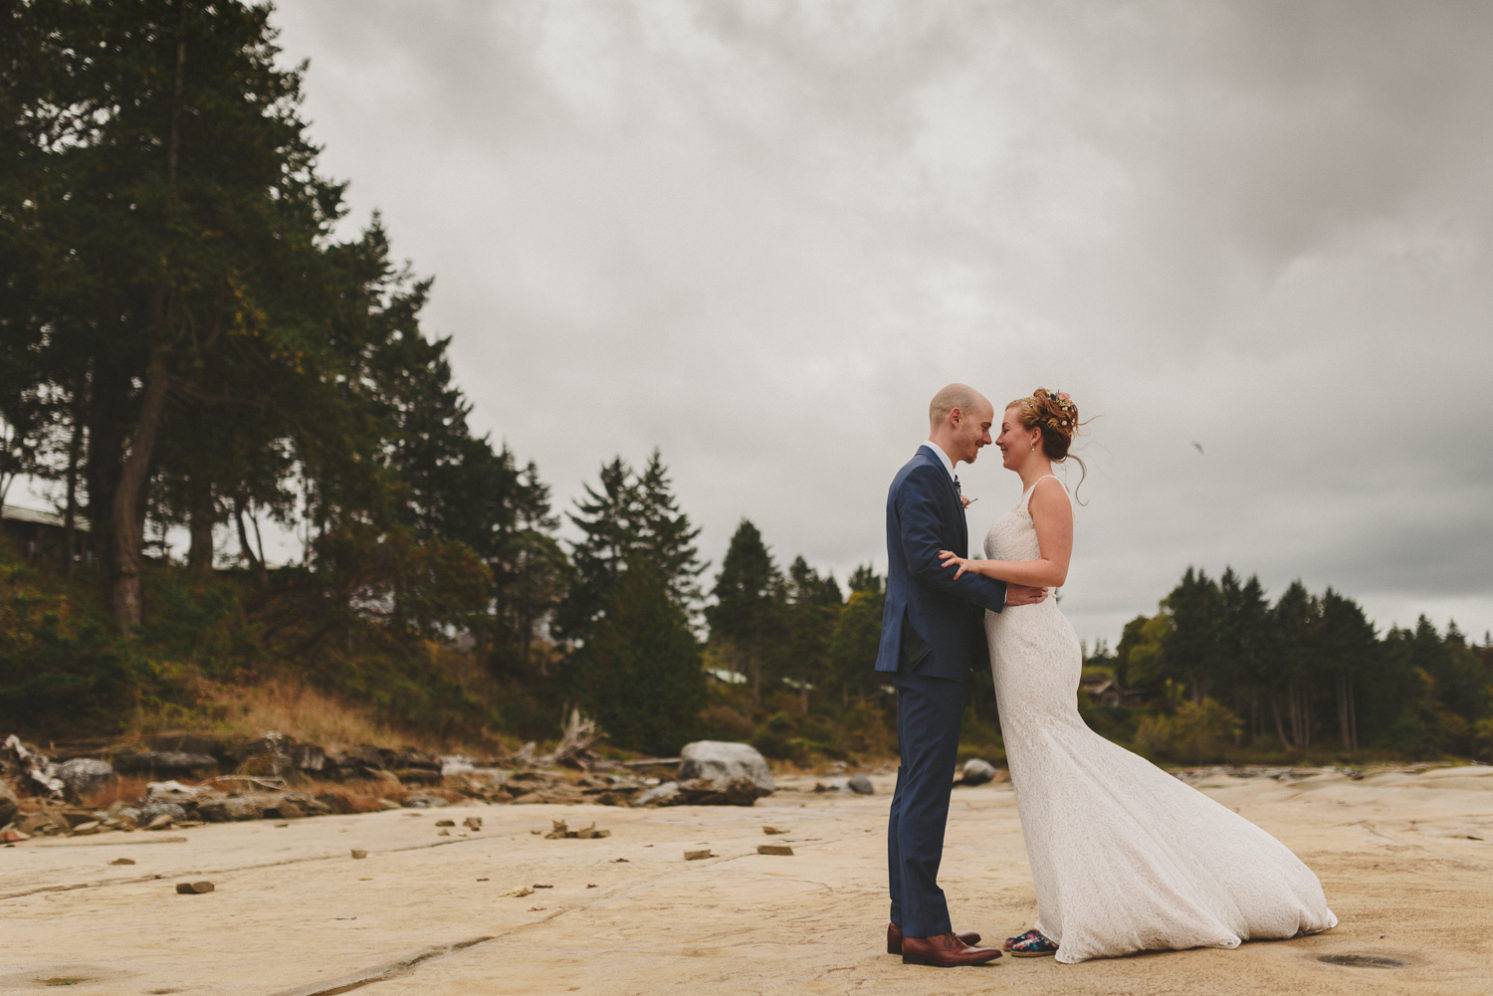 bride & groom on the beach with wind blowing